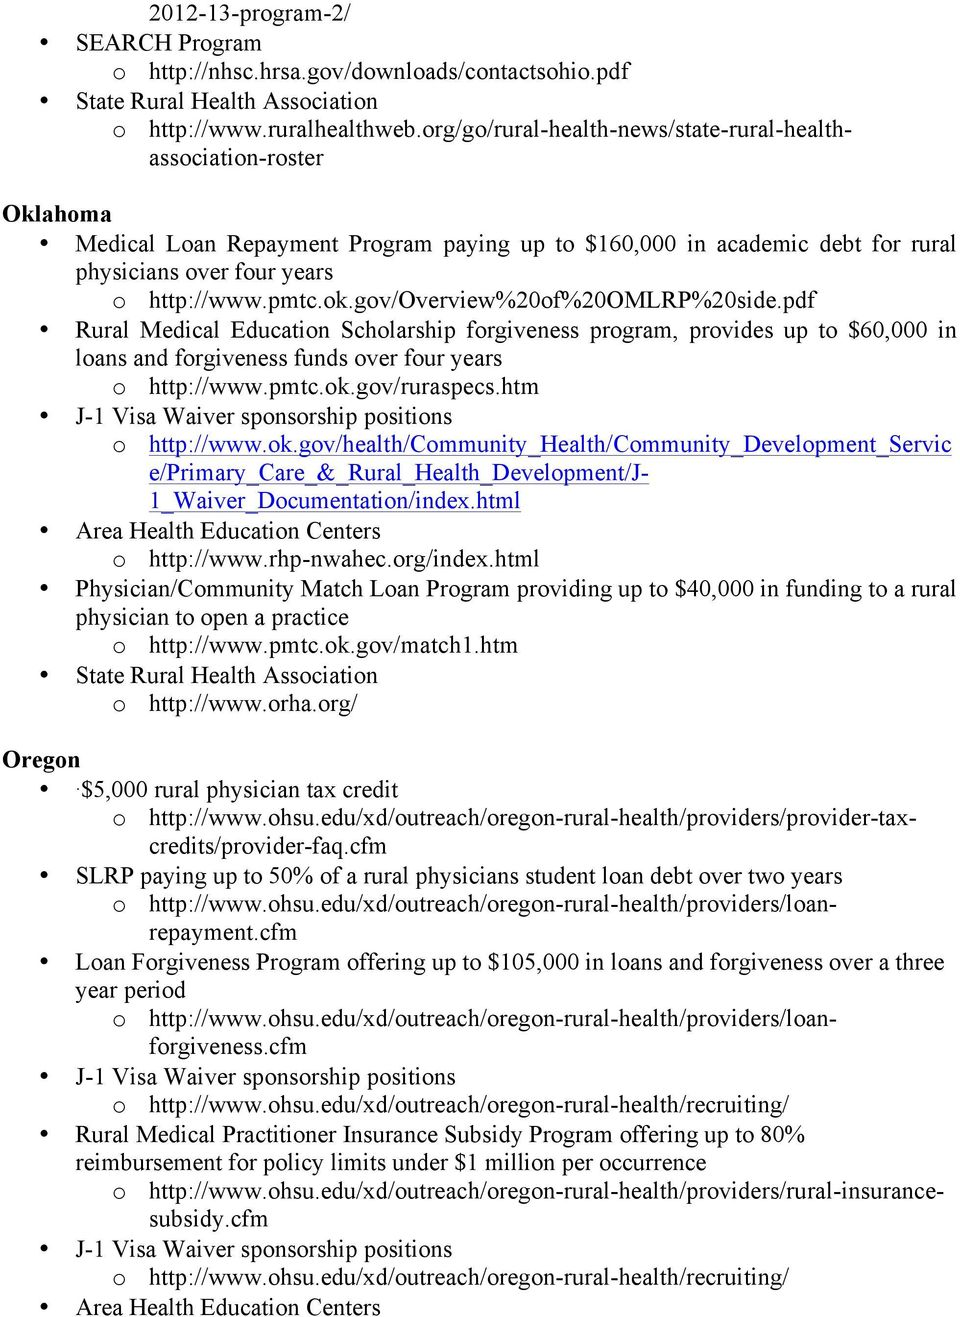 gov/overview%20of%20omlrp%20side.pdf Rural Medical Education Scholarship forgiveness program, provides up to $60,000 in loans and forgiveness funds over four years o http://www.pmtc.ok.gov/ruraspecs.